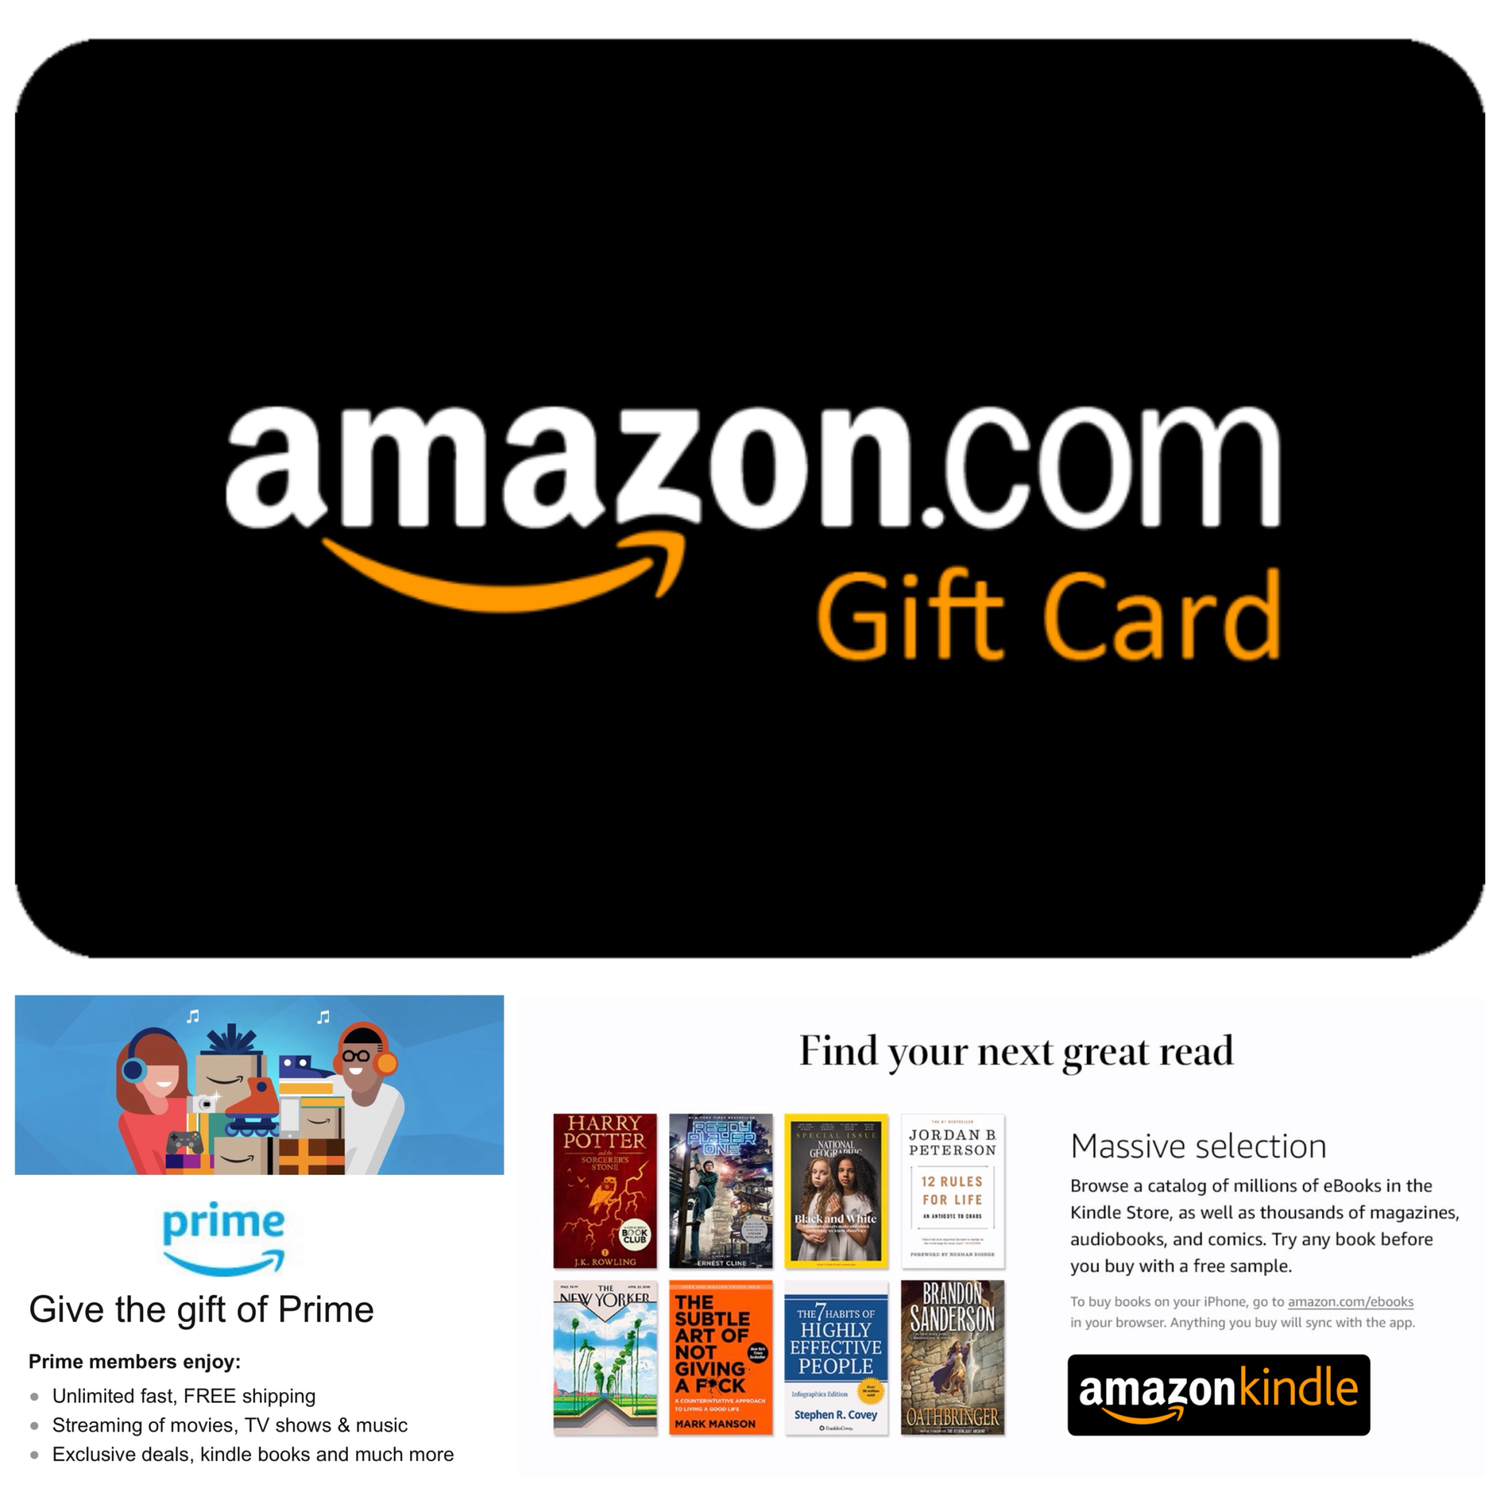 Amazon Gift Card US, Amazon Prime